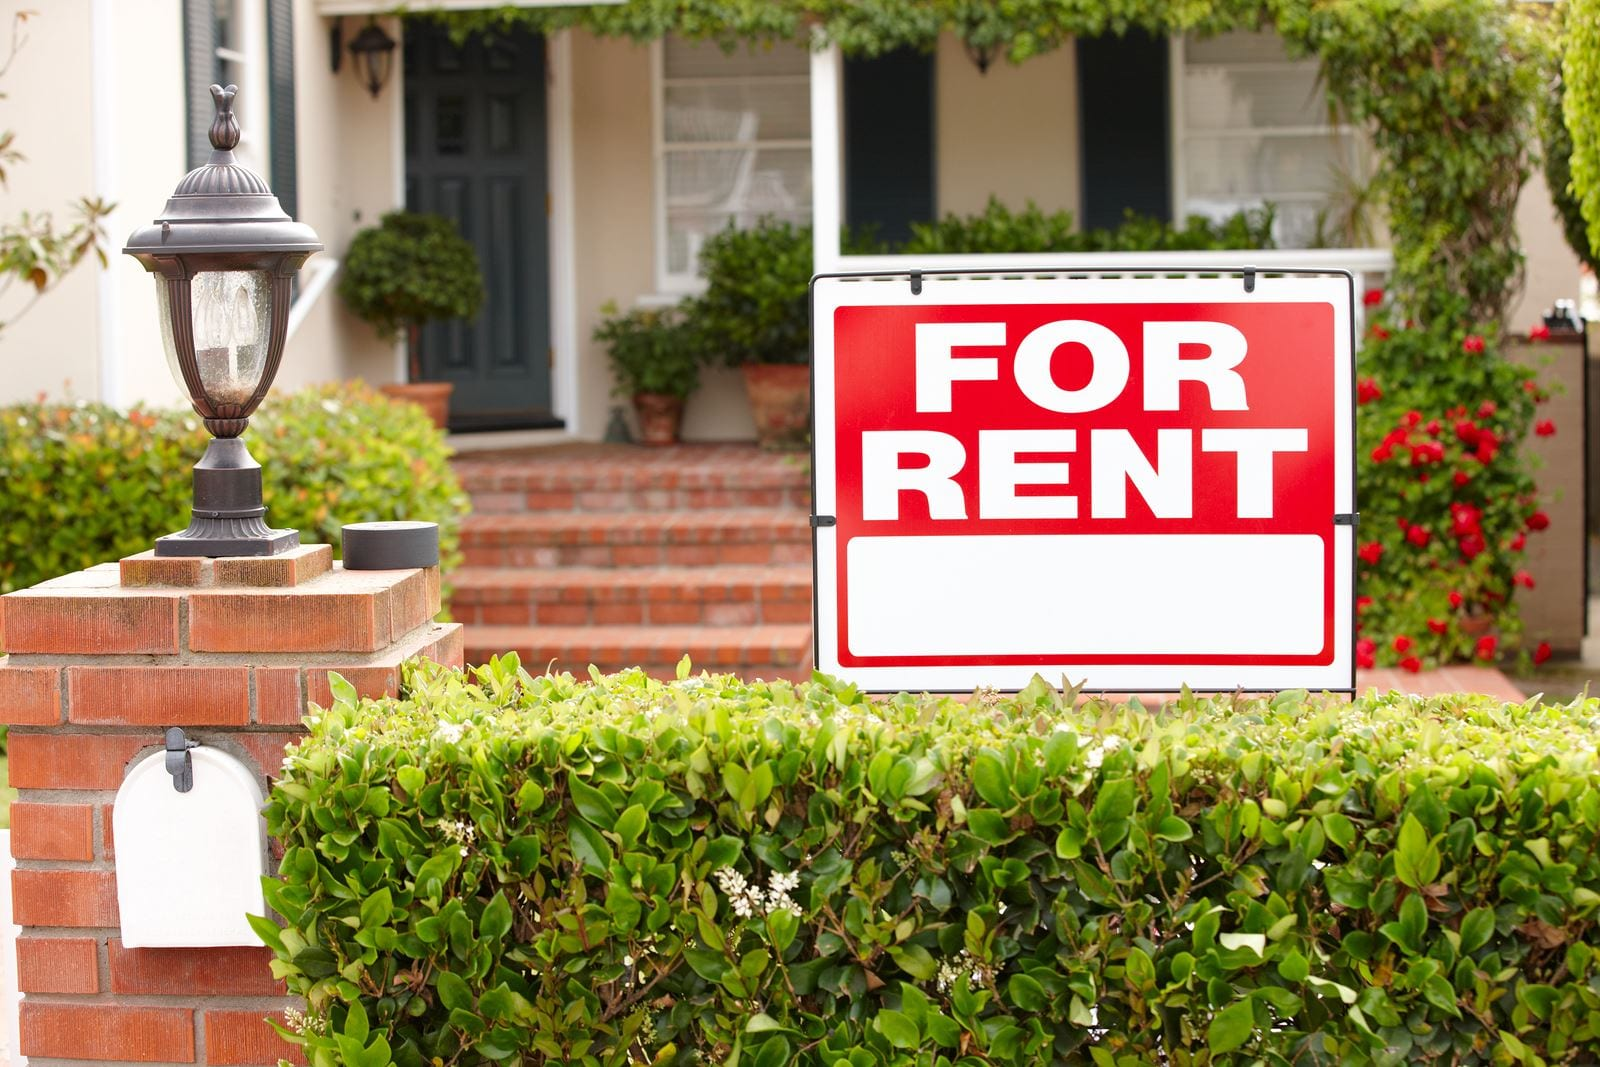 Easy Things To Know Always Before Renting A House/Apartment